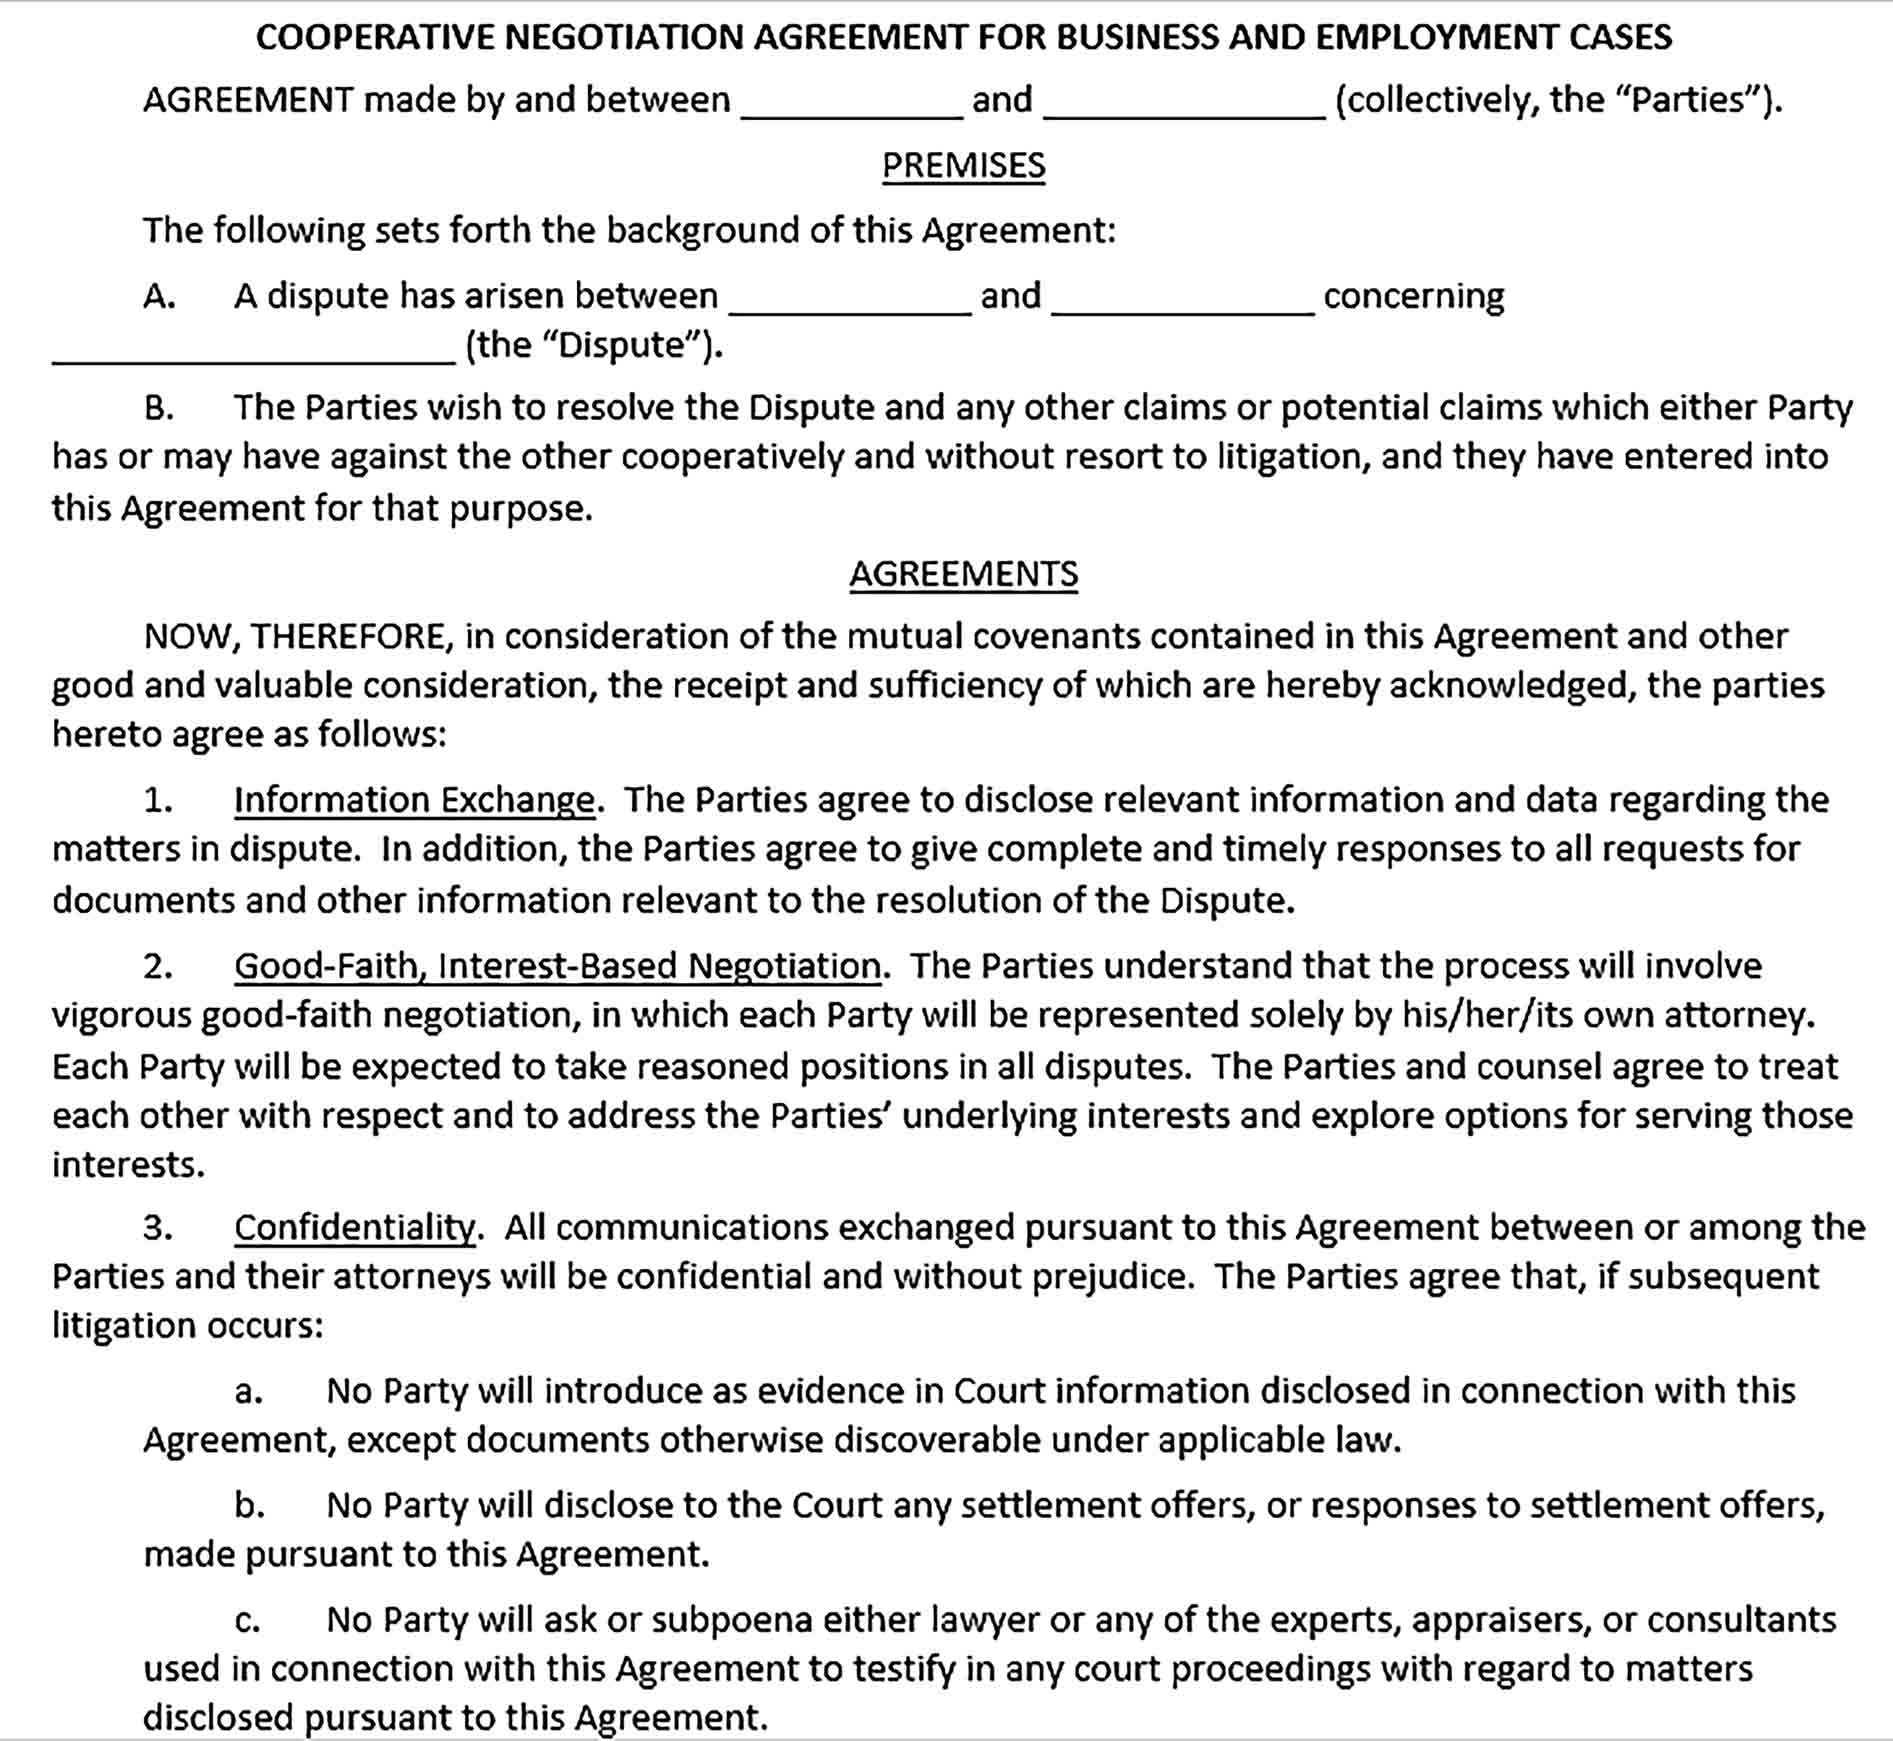 Sample Cooperative Confidentiality Negotiation Agreement